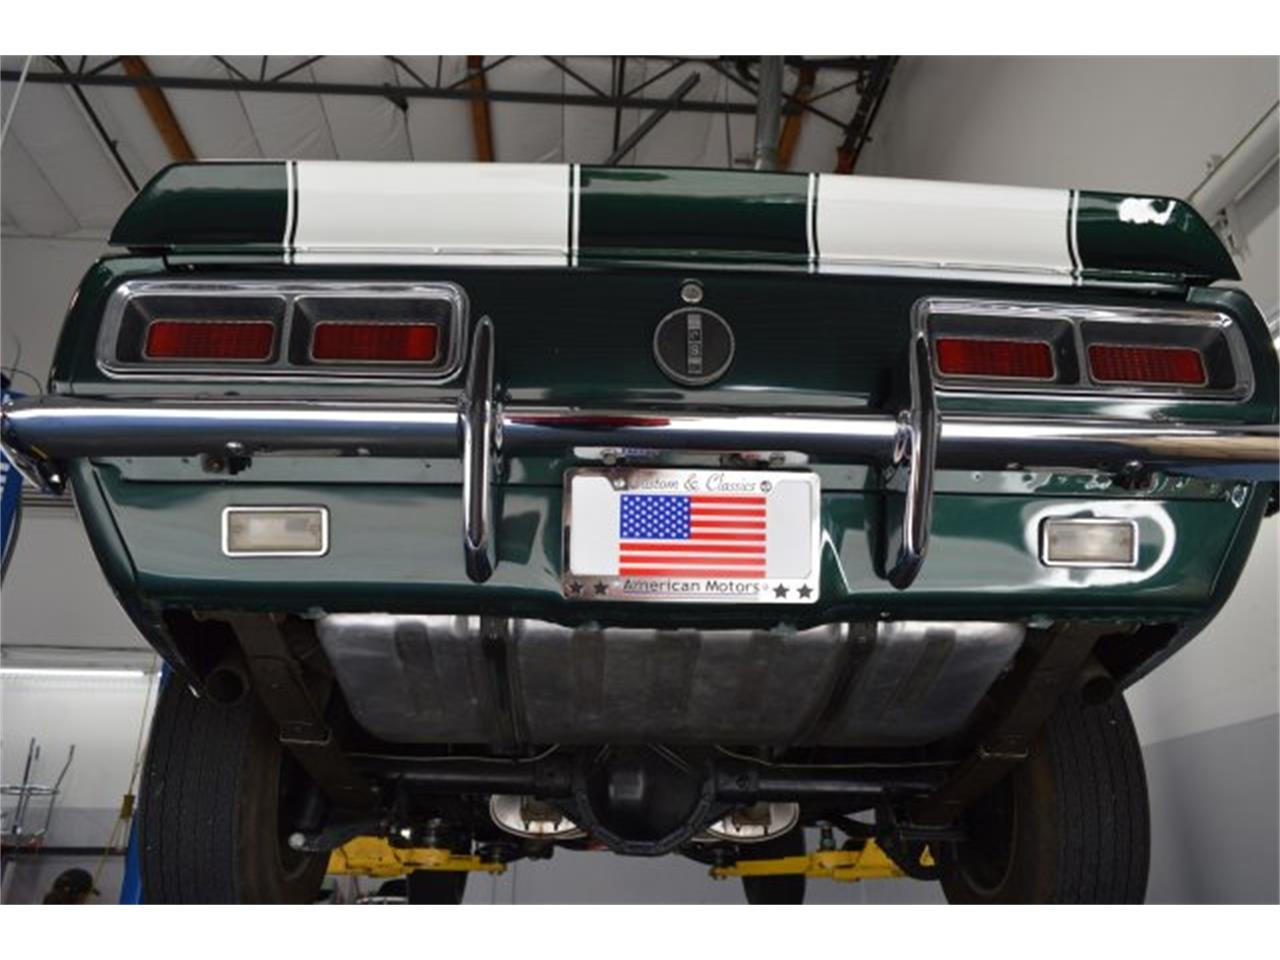 Large Picture of Classic 1968 Camaro RS Z28 located in San Jose California - $79,000.00 Offered by American Motors Customs and Classics - PCPC